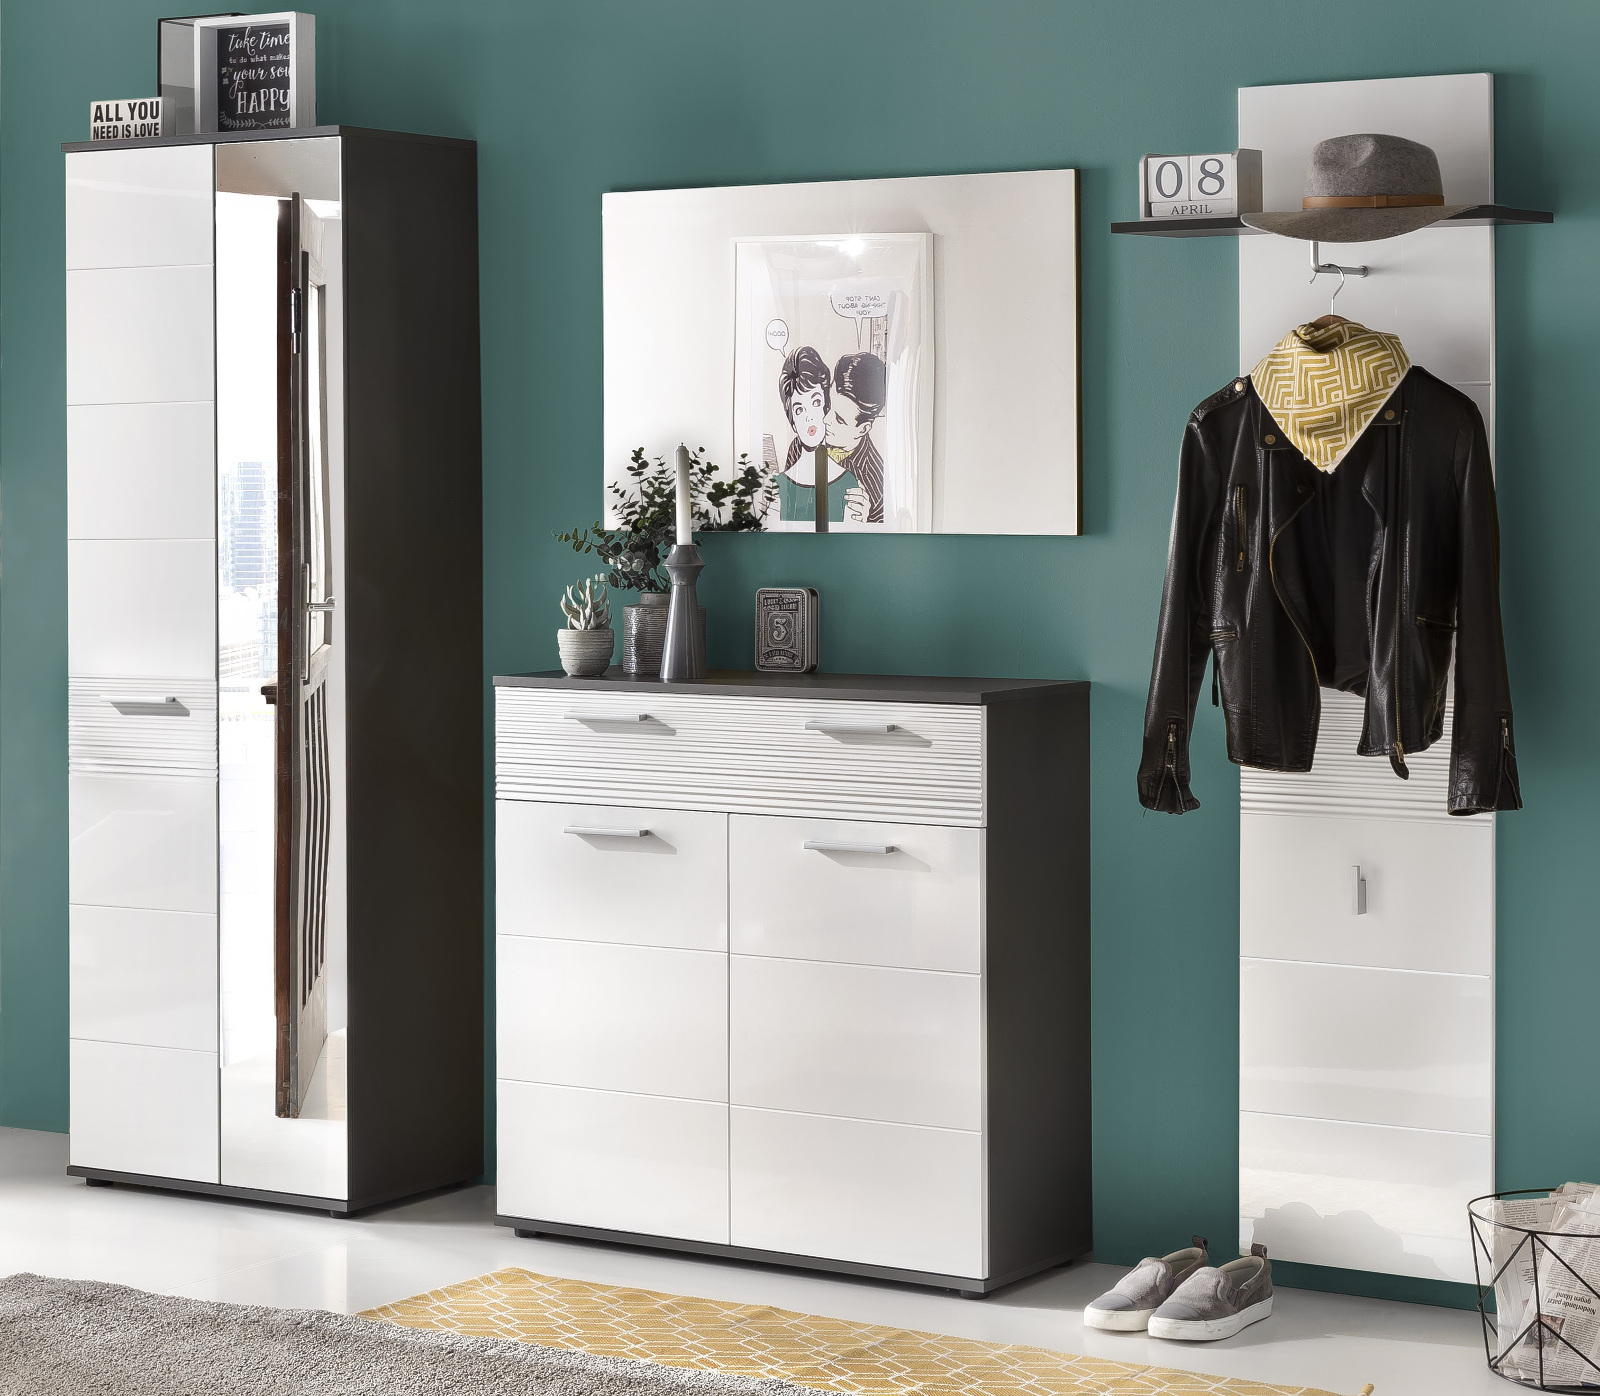 flur kommode schuhschrank smart in hochglanz. Black Bedroom Furniture Sets. Home Design Ideas